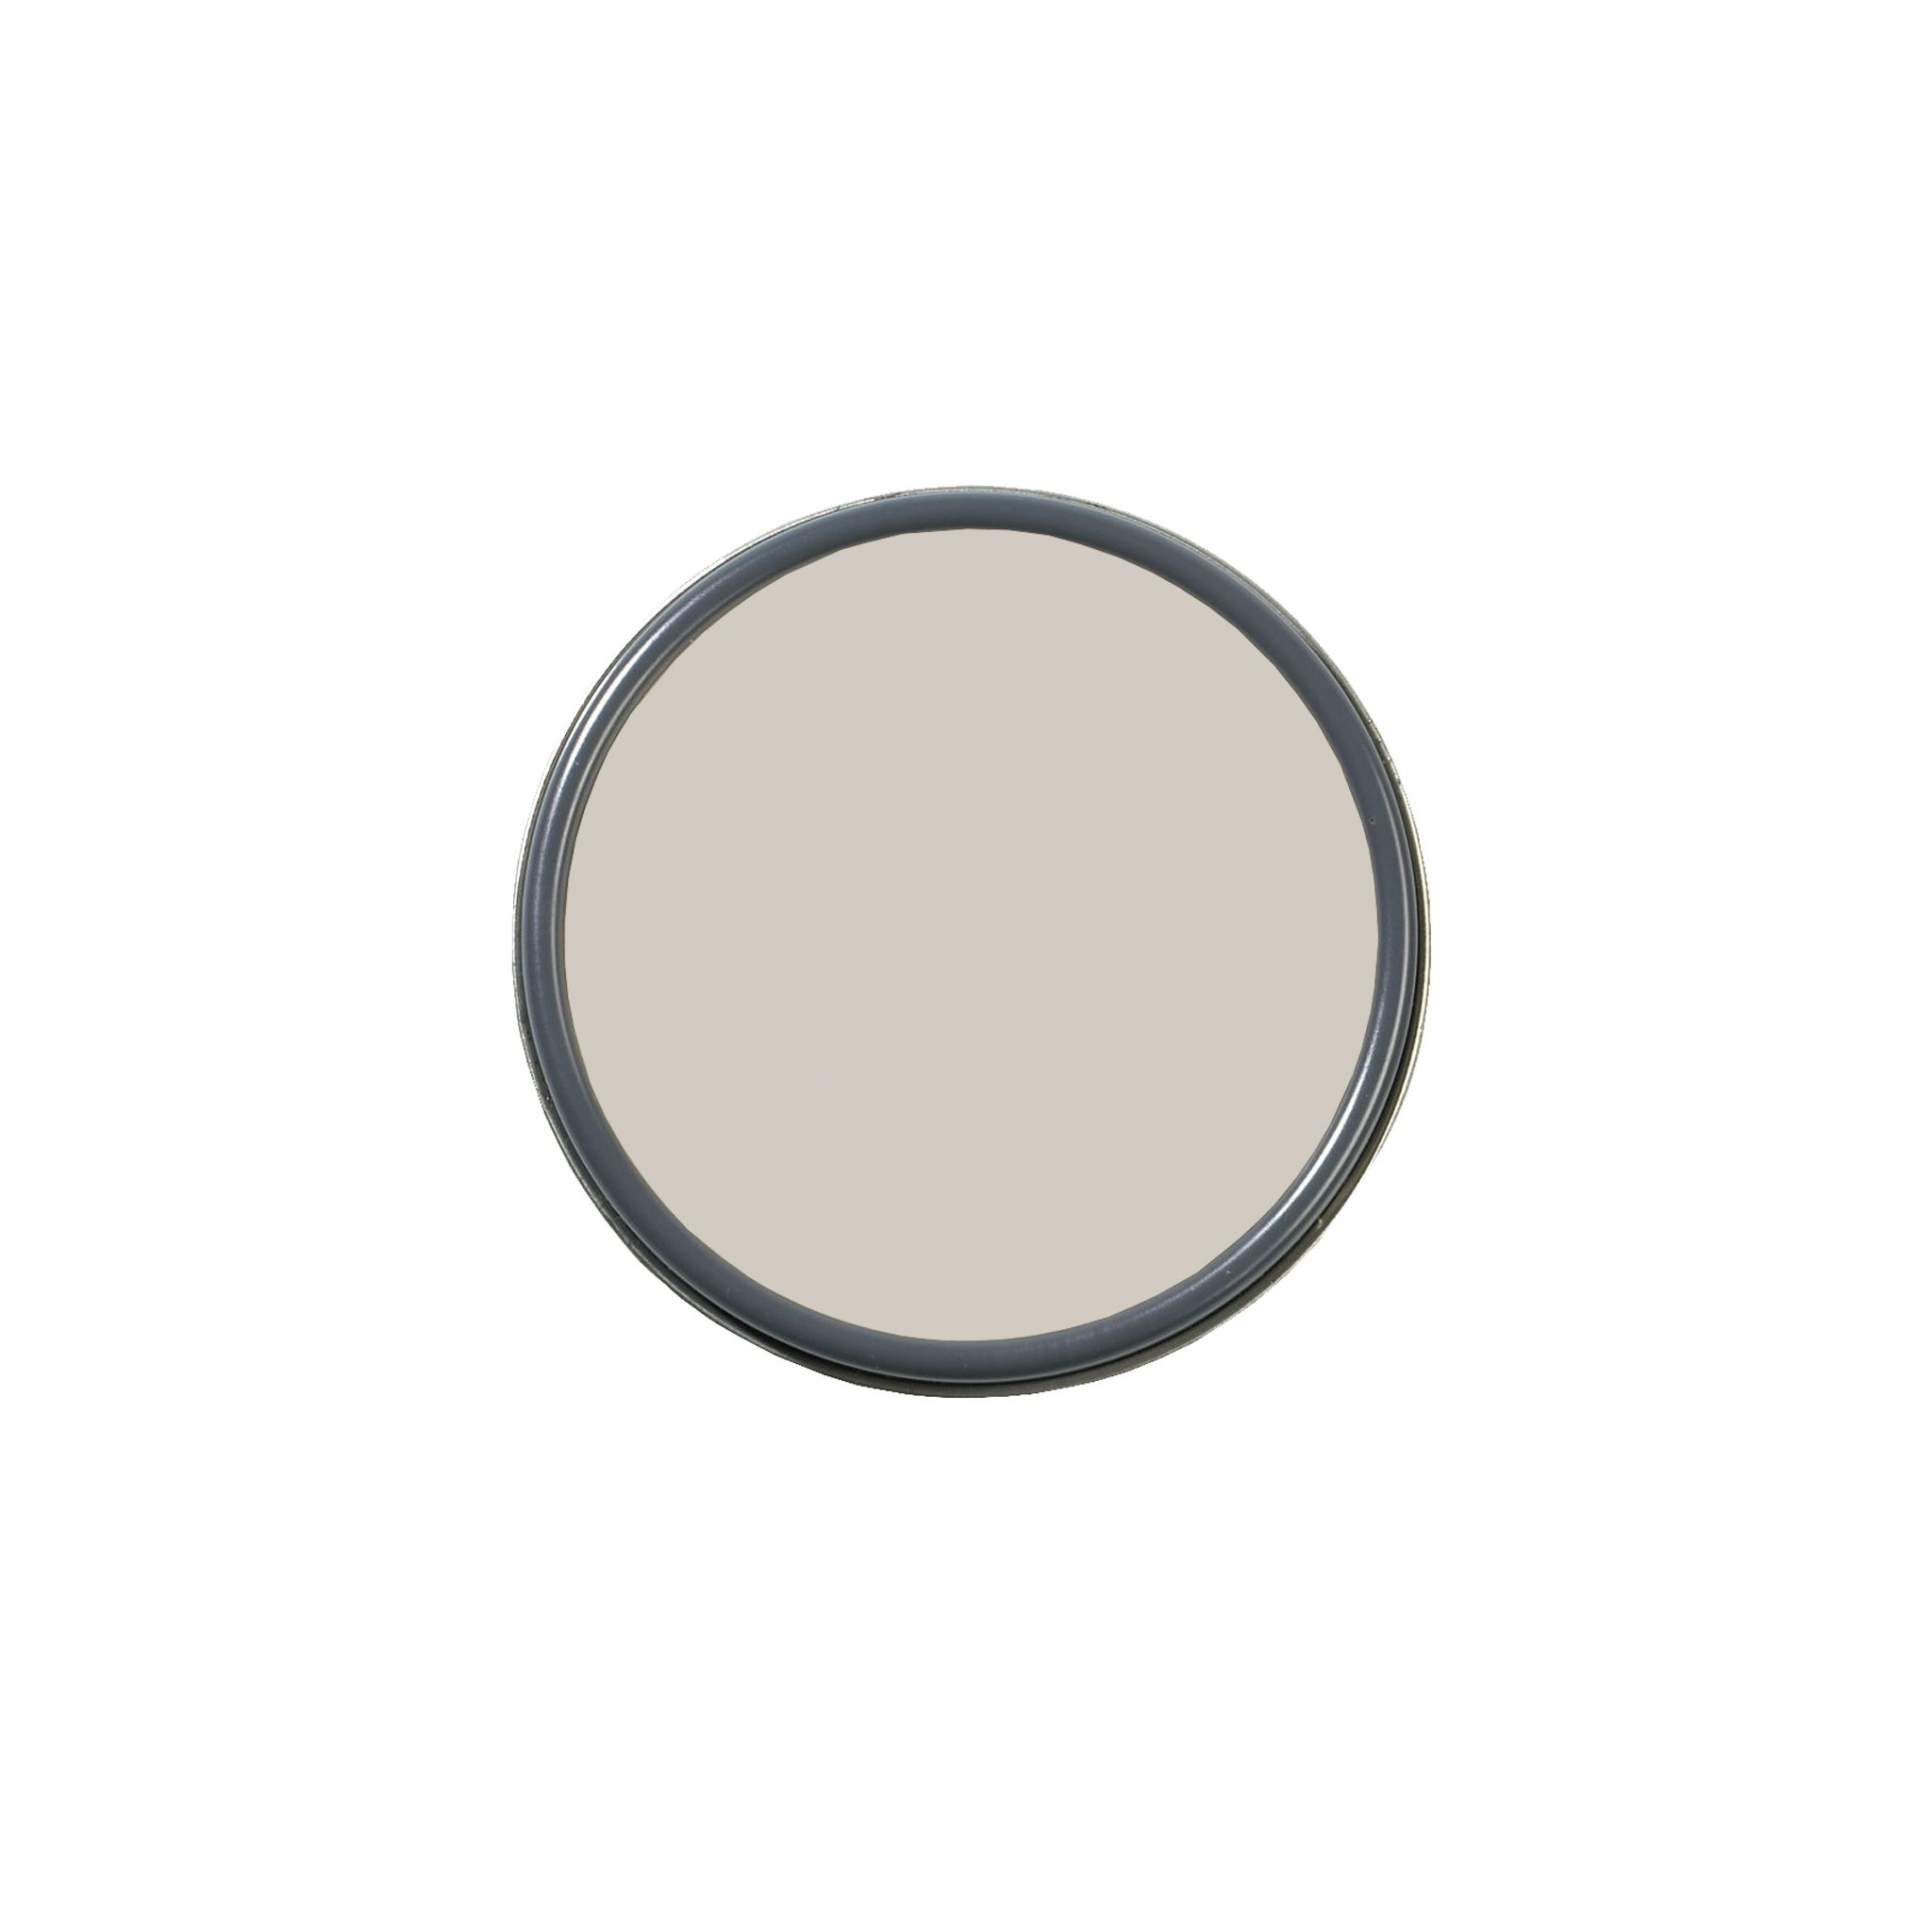 Sherwin-Williams Agreeable Gray